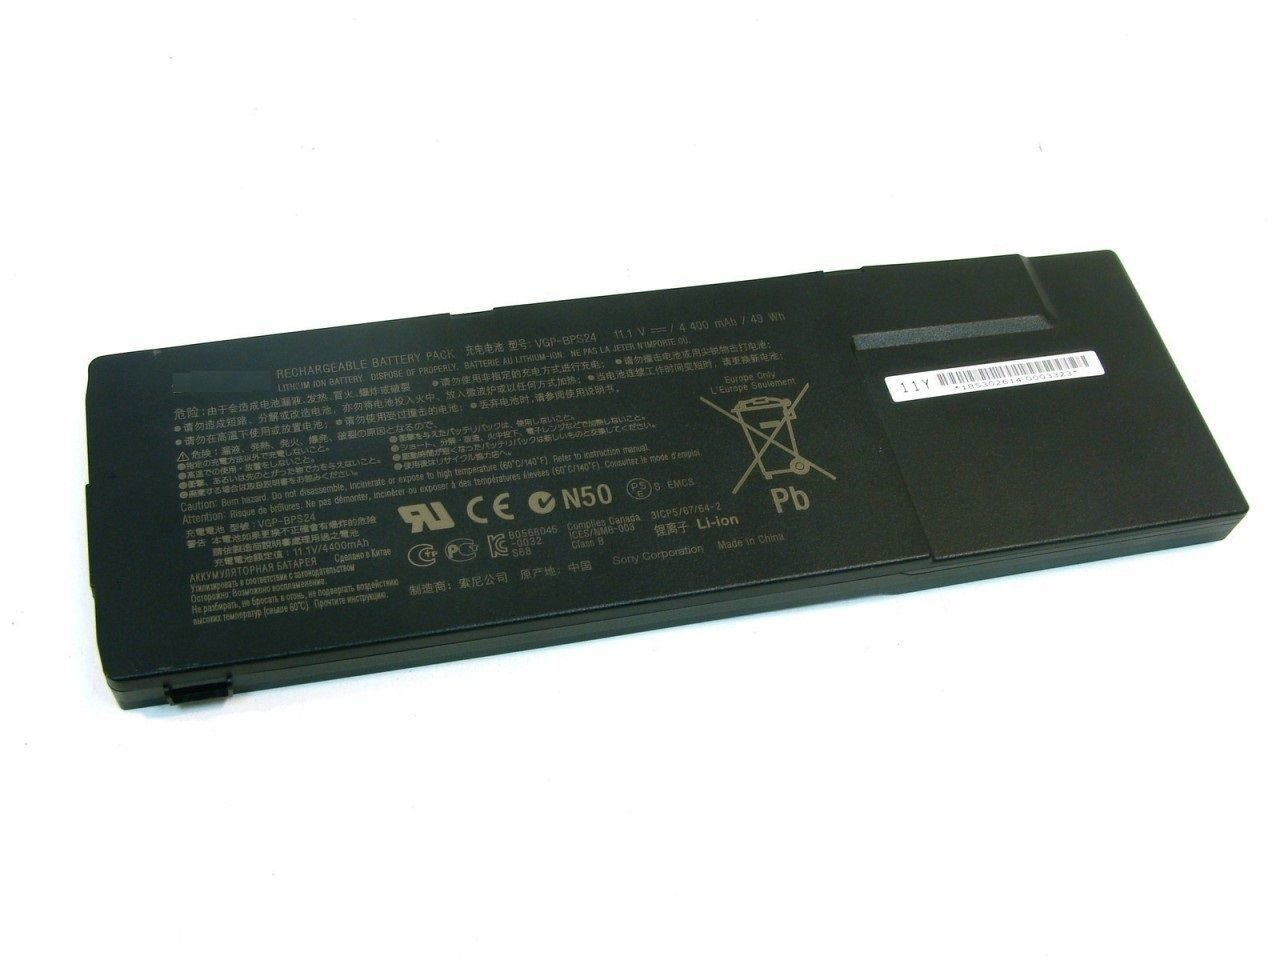 Sony vaio VPC SA SB SC SD SE bps24 series compatible laptop battery